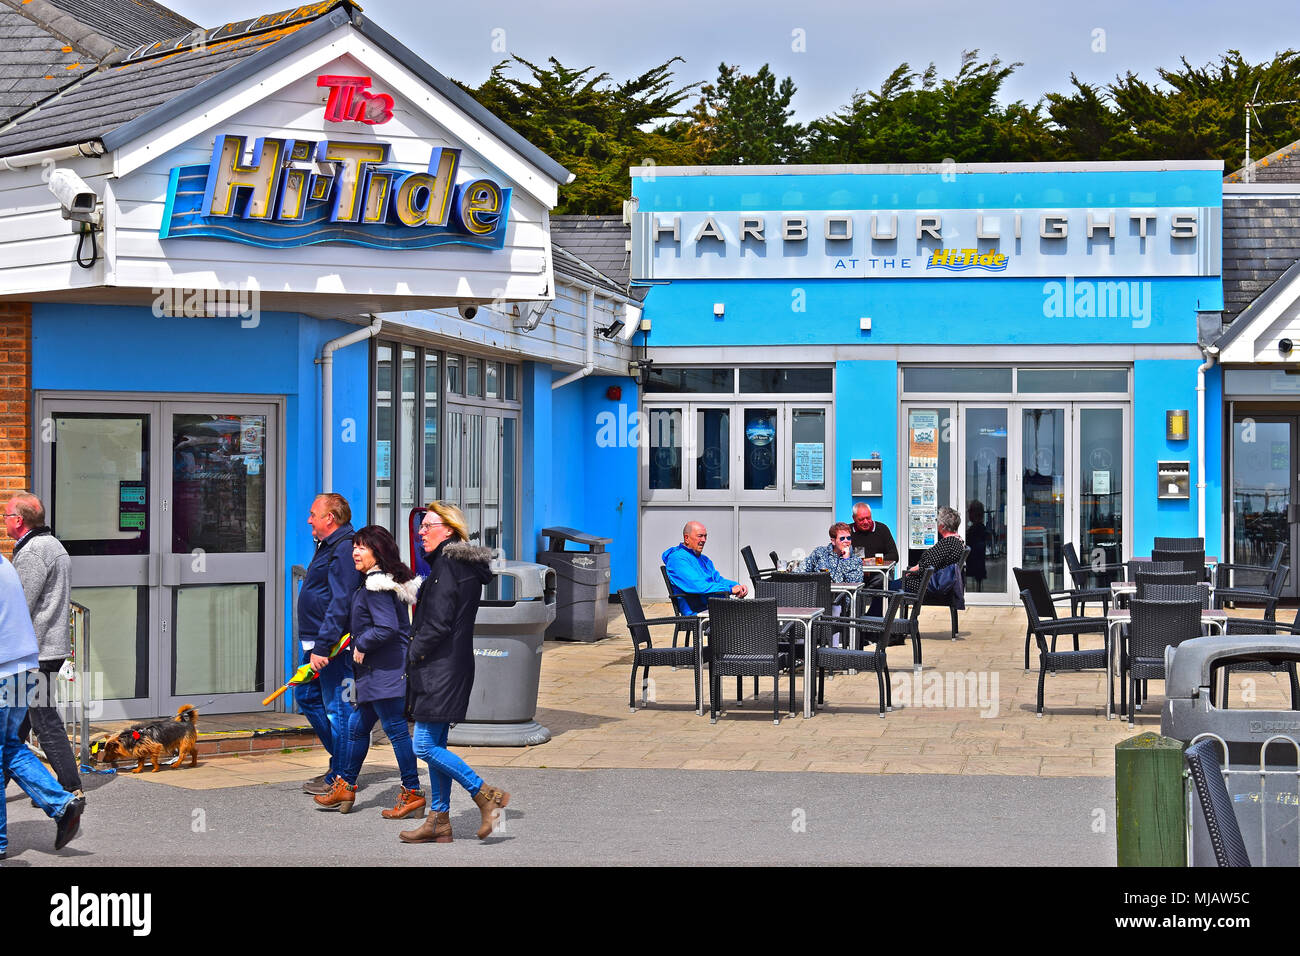 Holidaymakers Stroll Past The Hi Tide Inn U0026 Harbour Lights  Bar/entertainments Centre On The Seafront At The Seaside Resort Of  Porthcawl. South Wales.